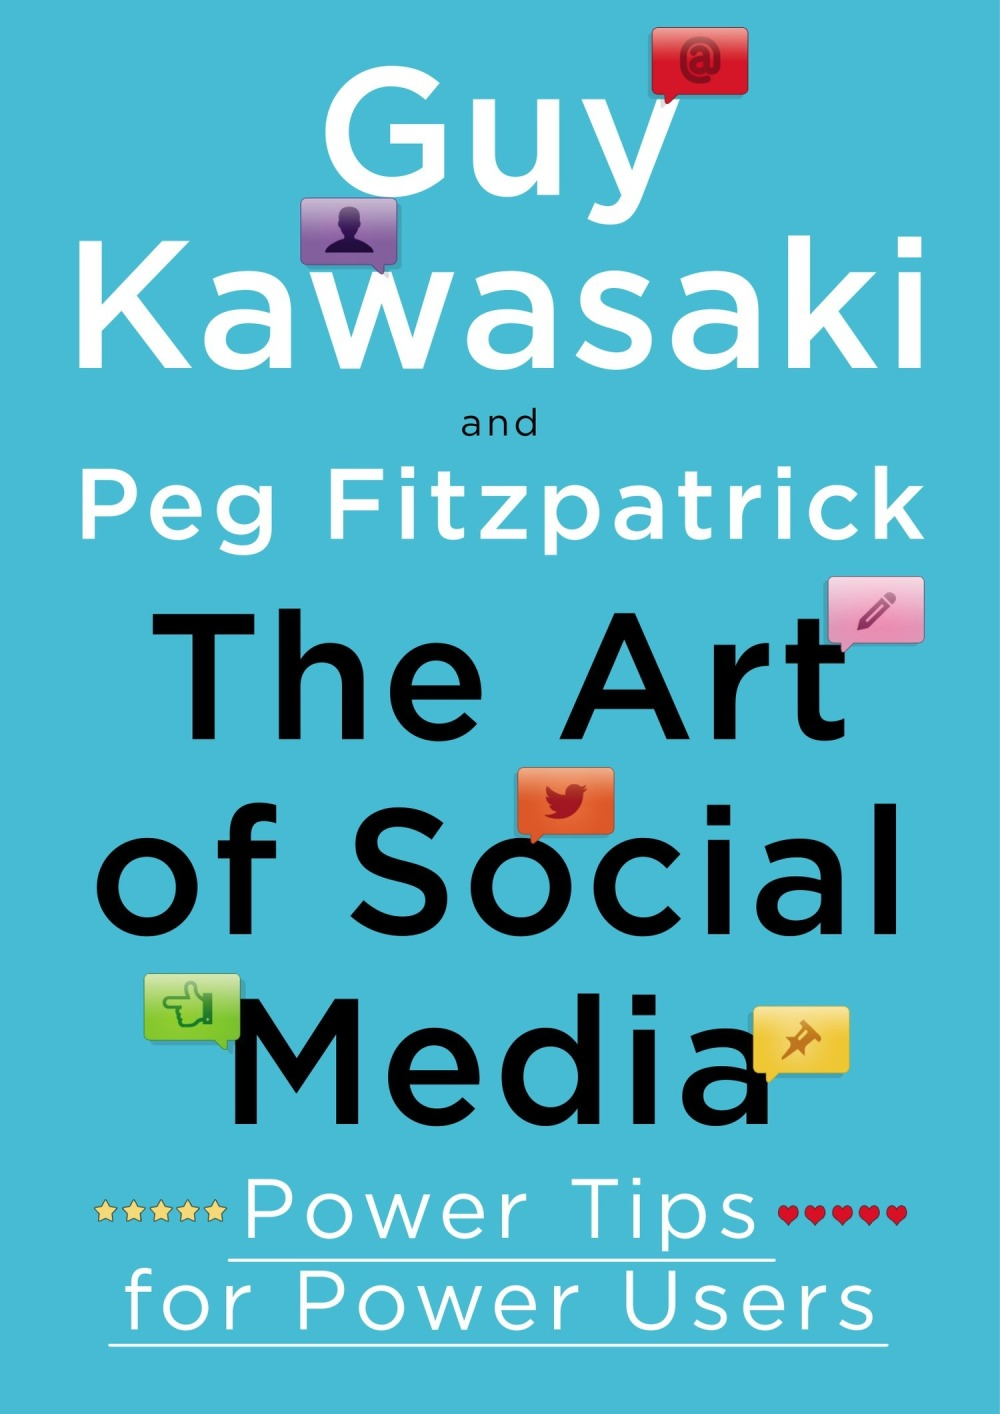 The Art of Social Media by Guy Kawasaki & Peg Fitzpatrick